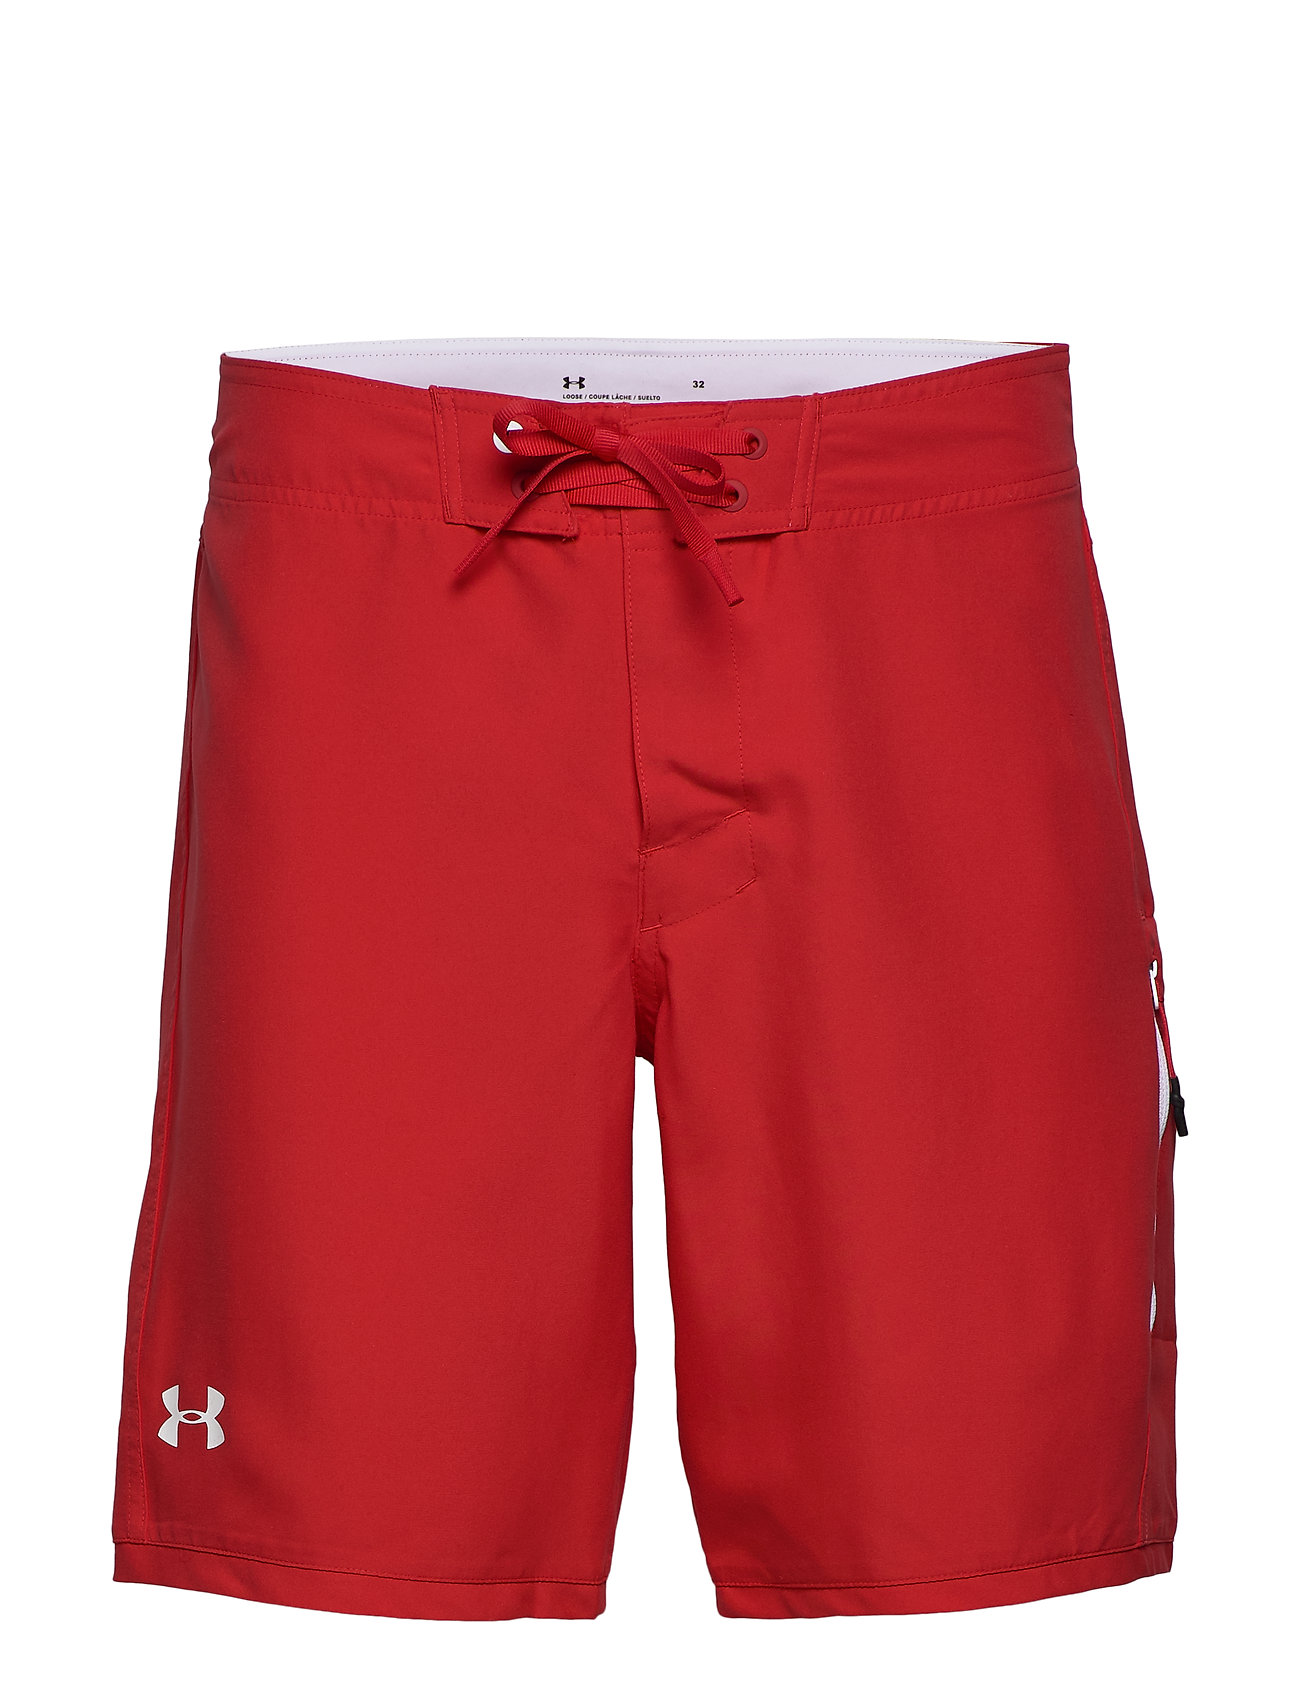 Under Armour Shore Break Boardshort - RED